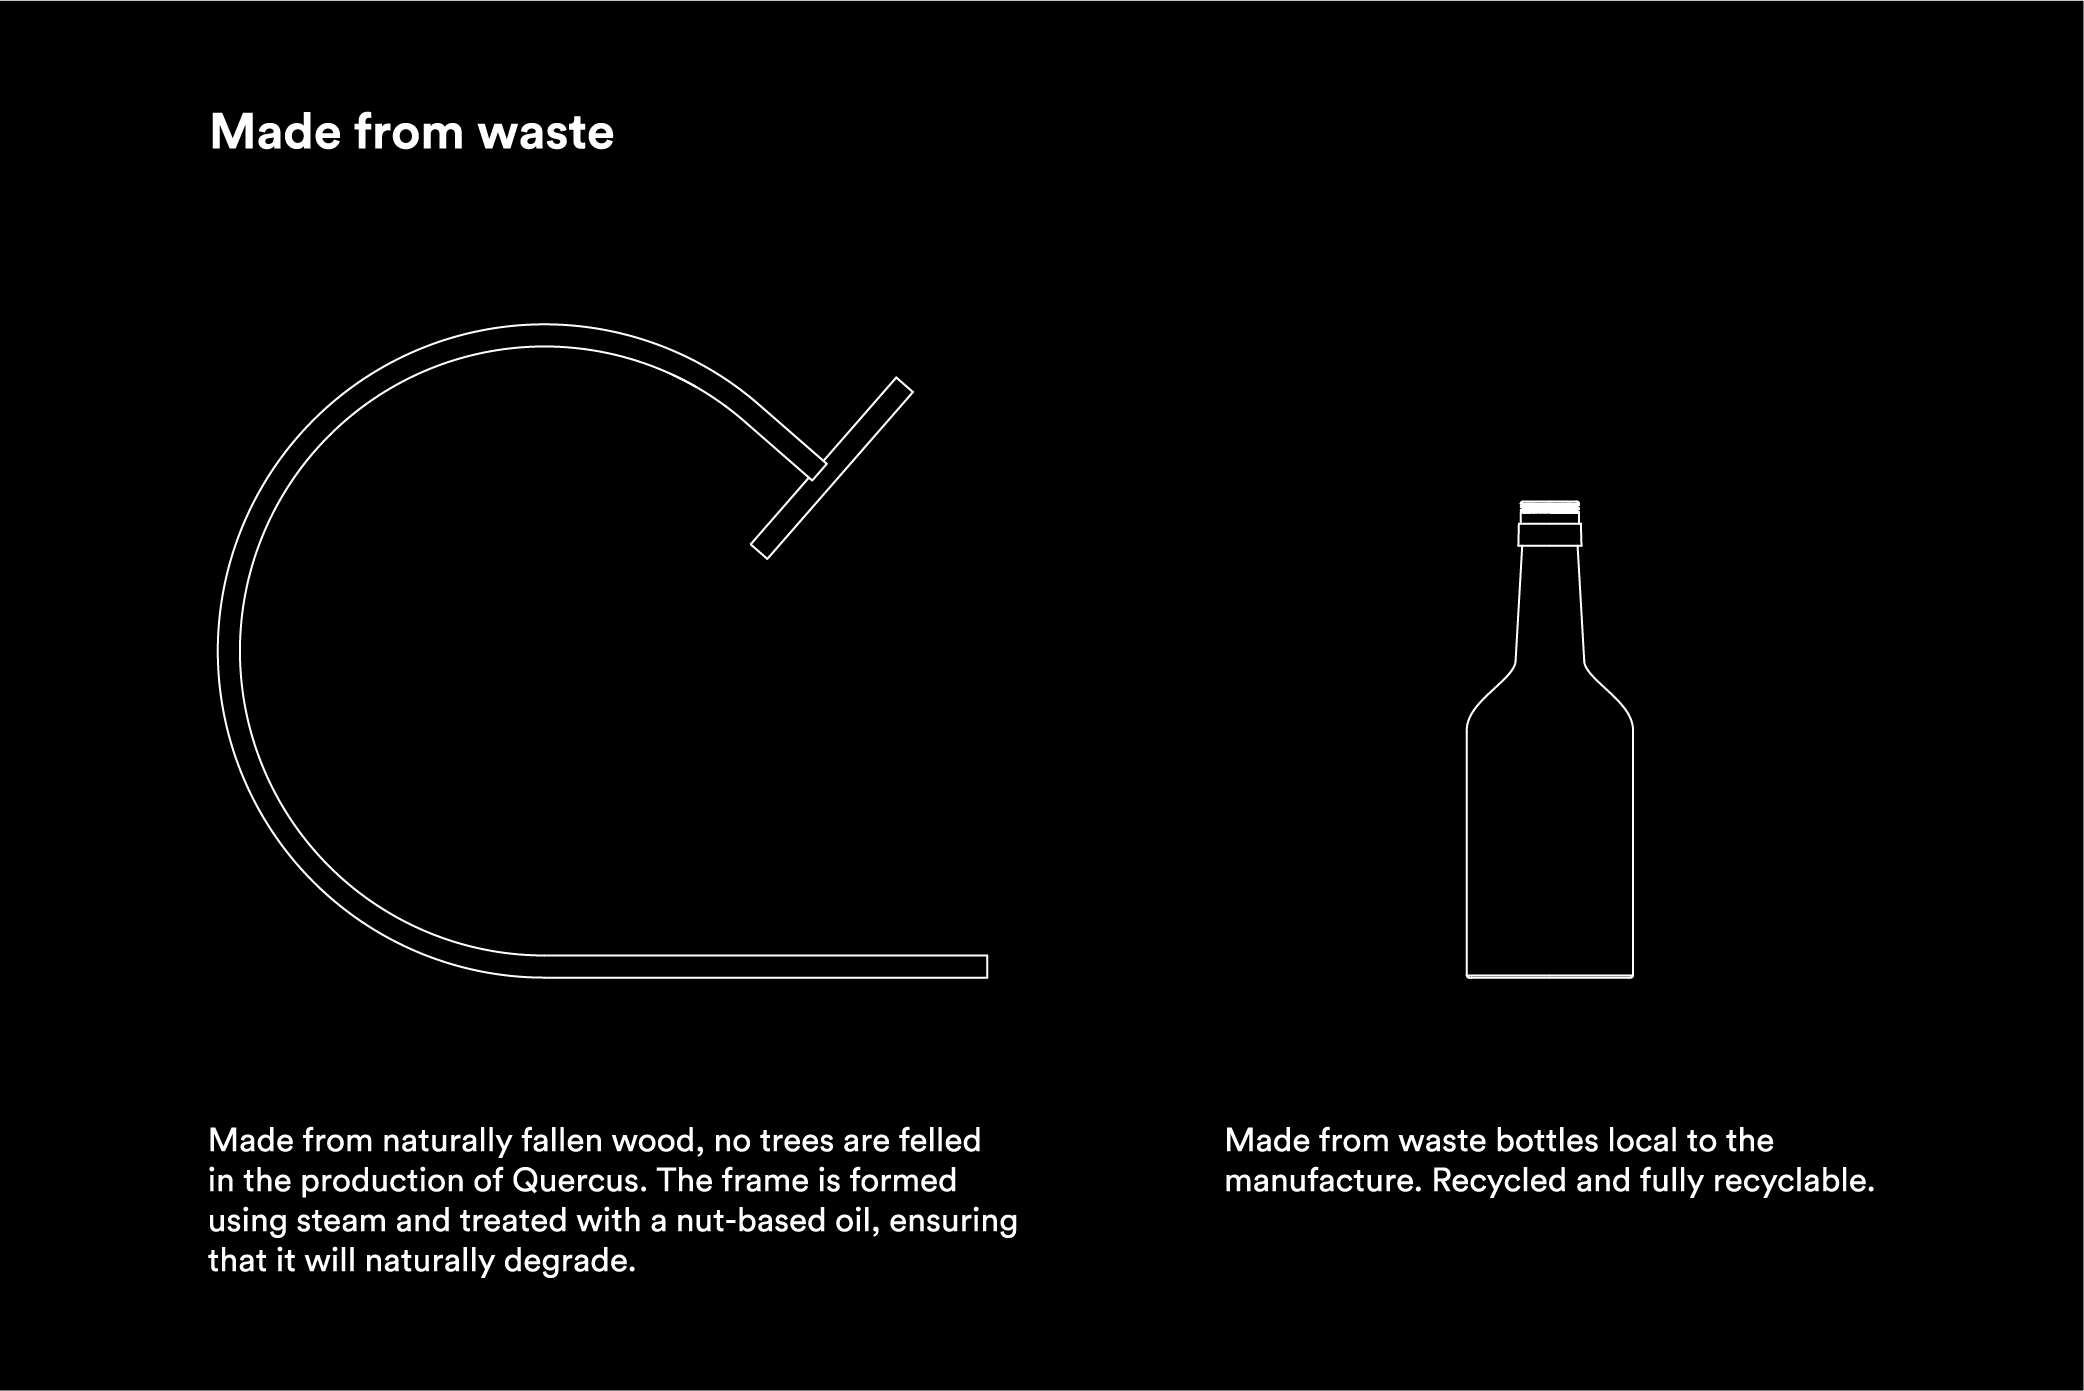 made-from-waste-02.png